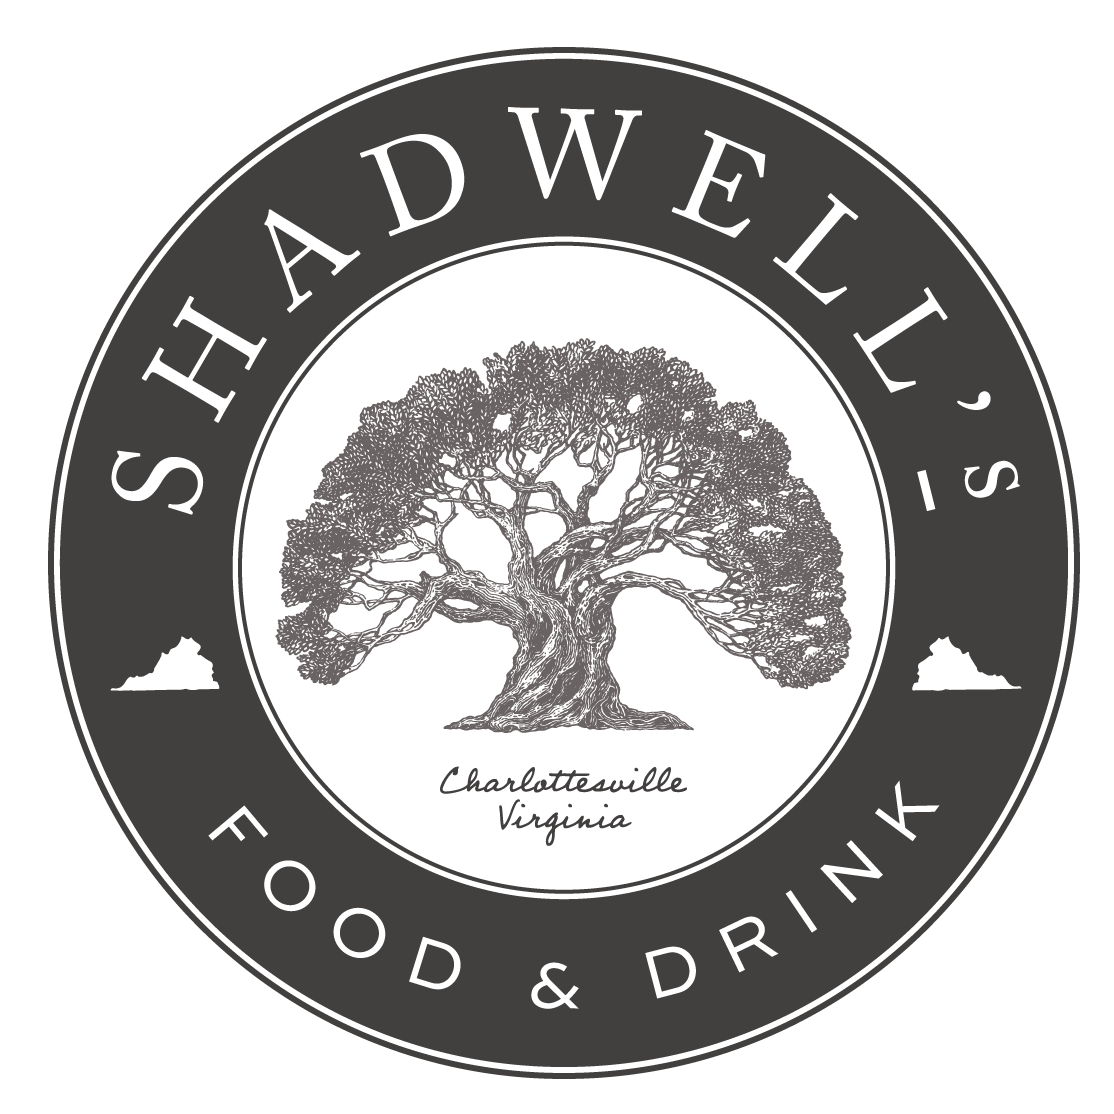 Shadwells_Logo_Black_CMYK_TREE_VA.png